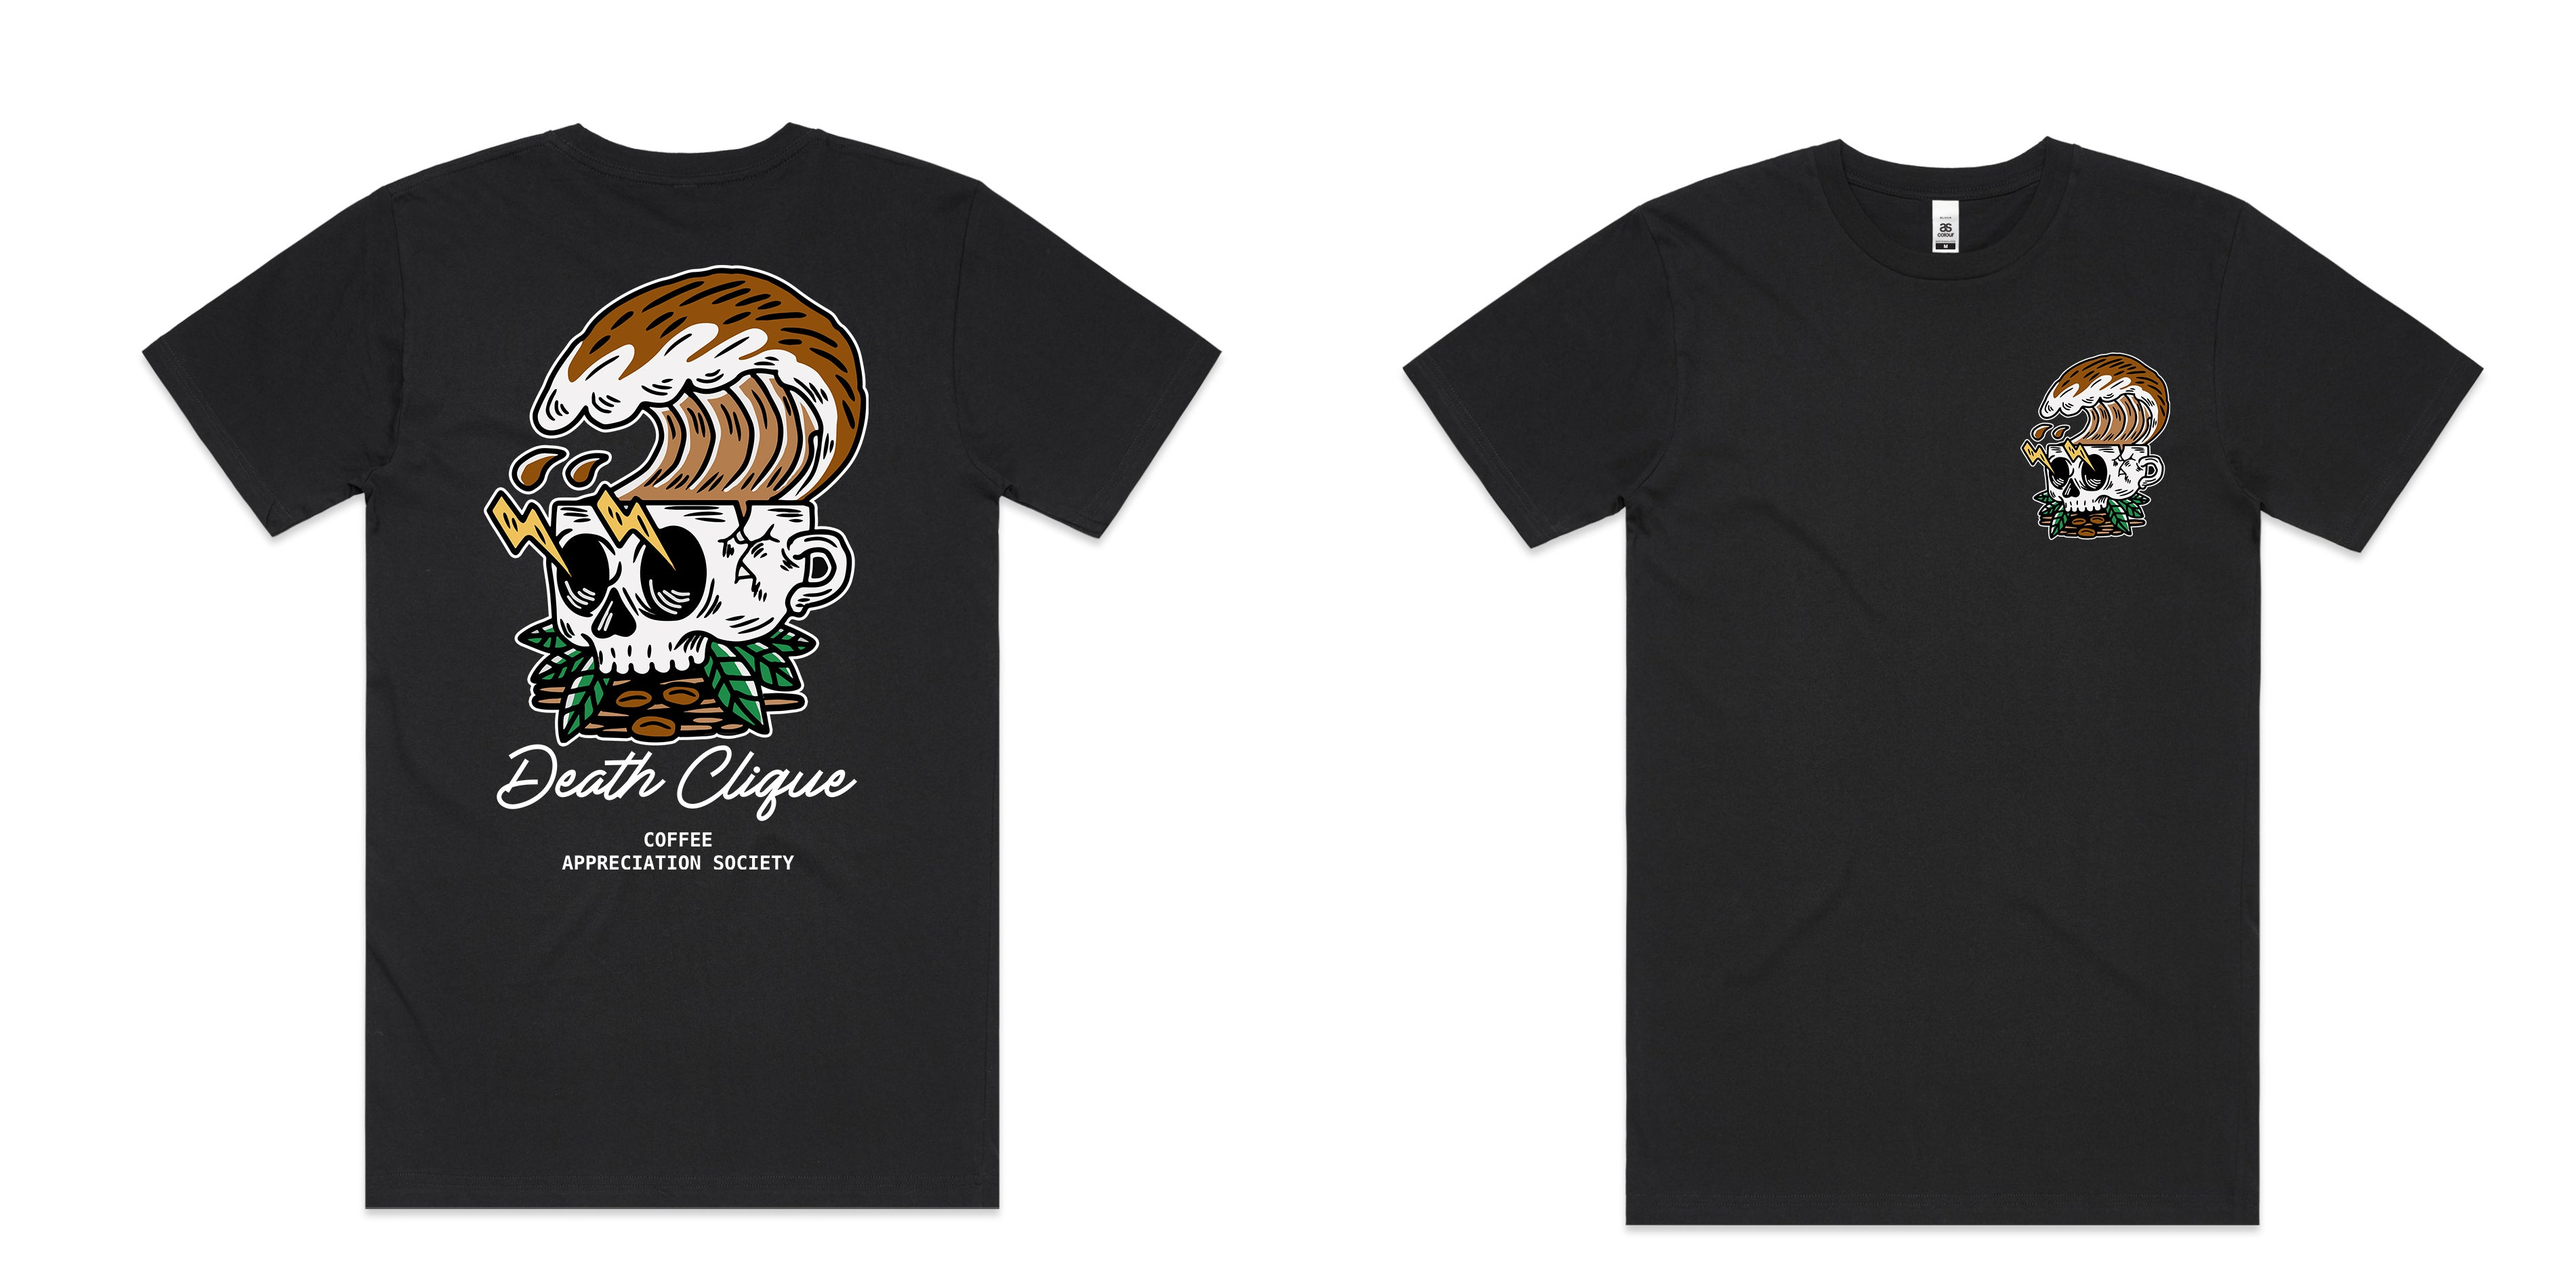 Coffee Appreciation Society Black Tee